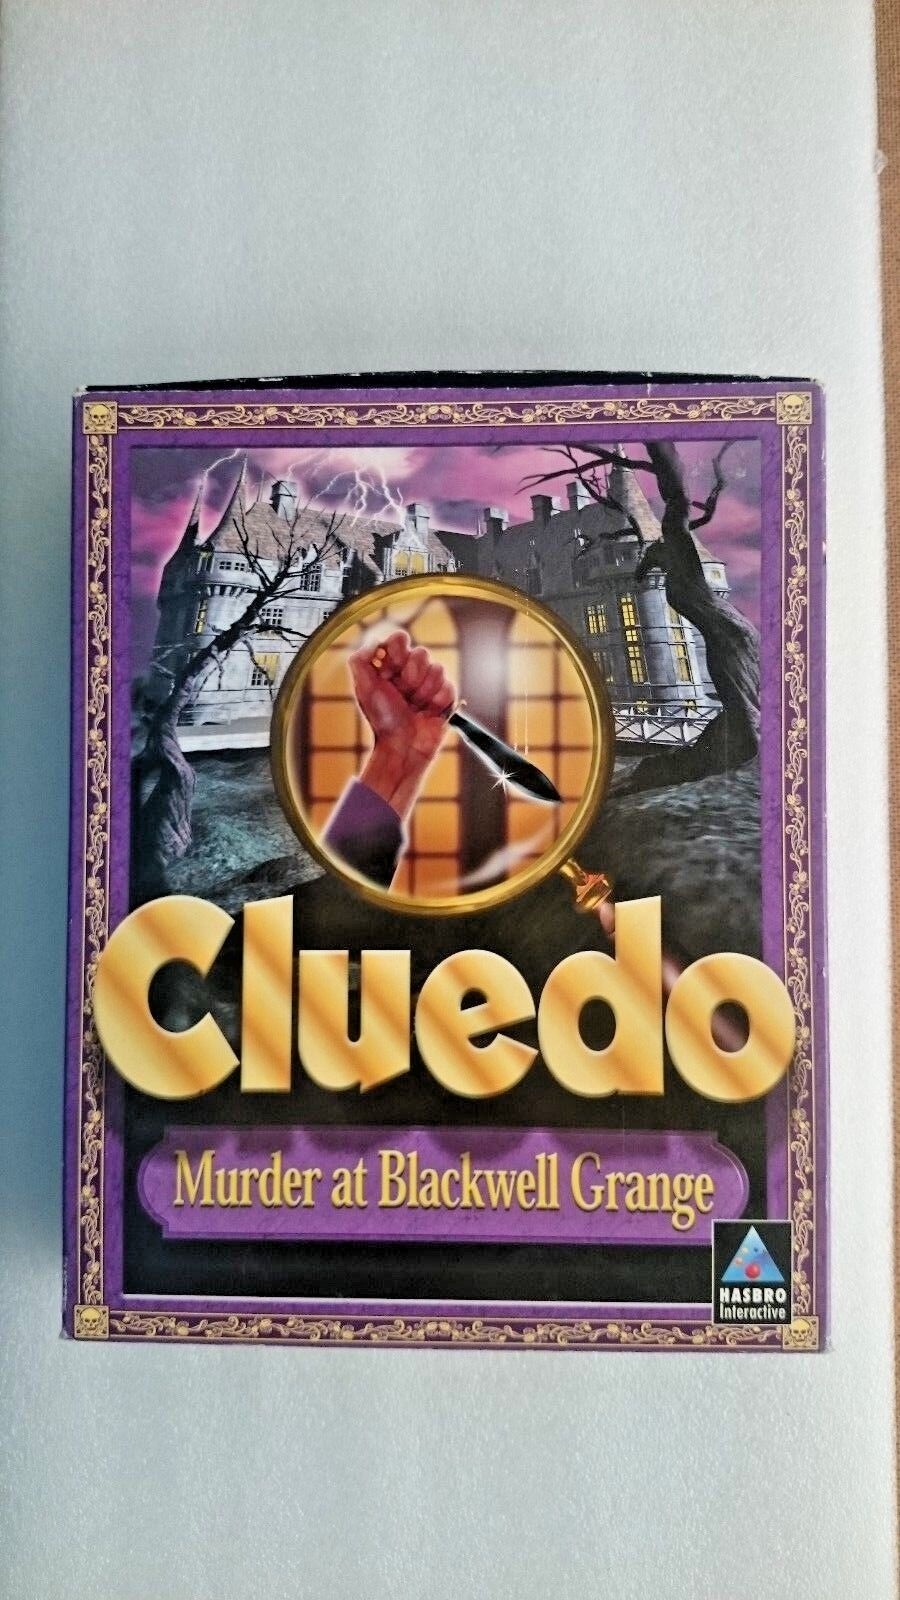 Cluedo: Murder at Blackwell Grange (PC: Windows, 1998) - Big Box Edition